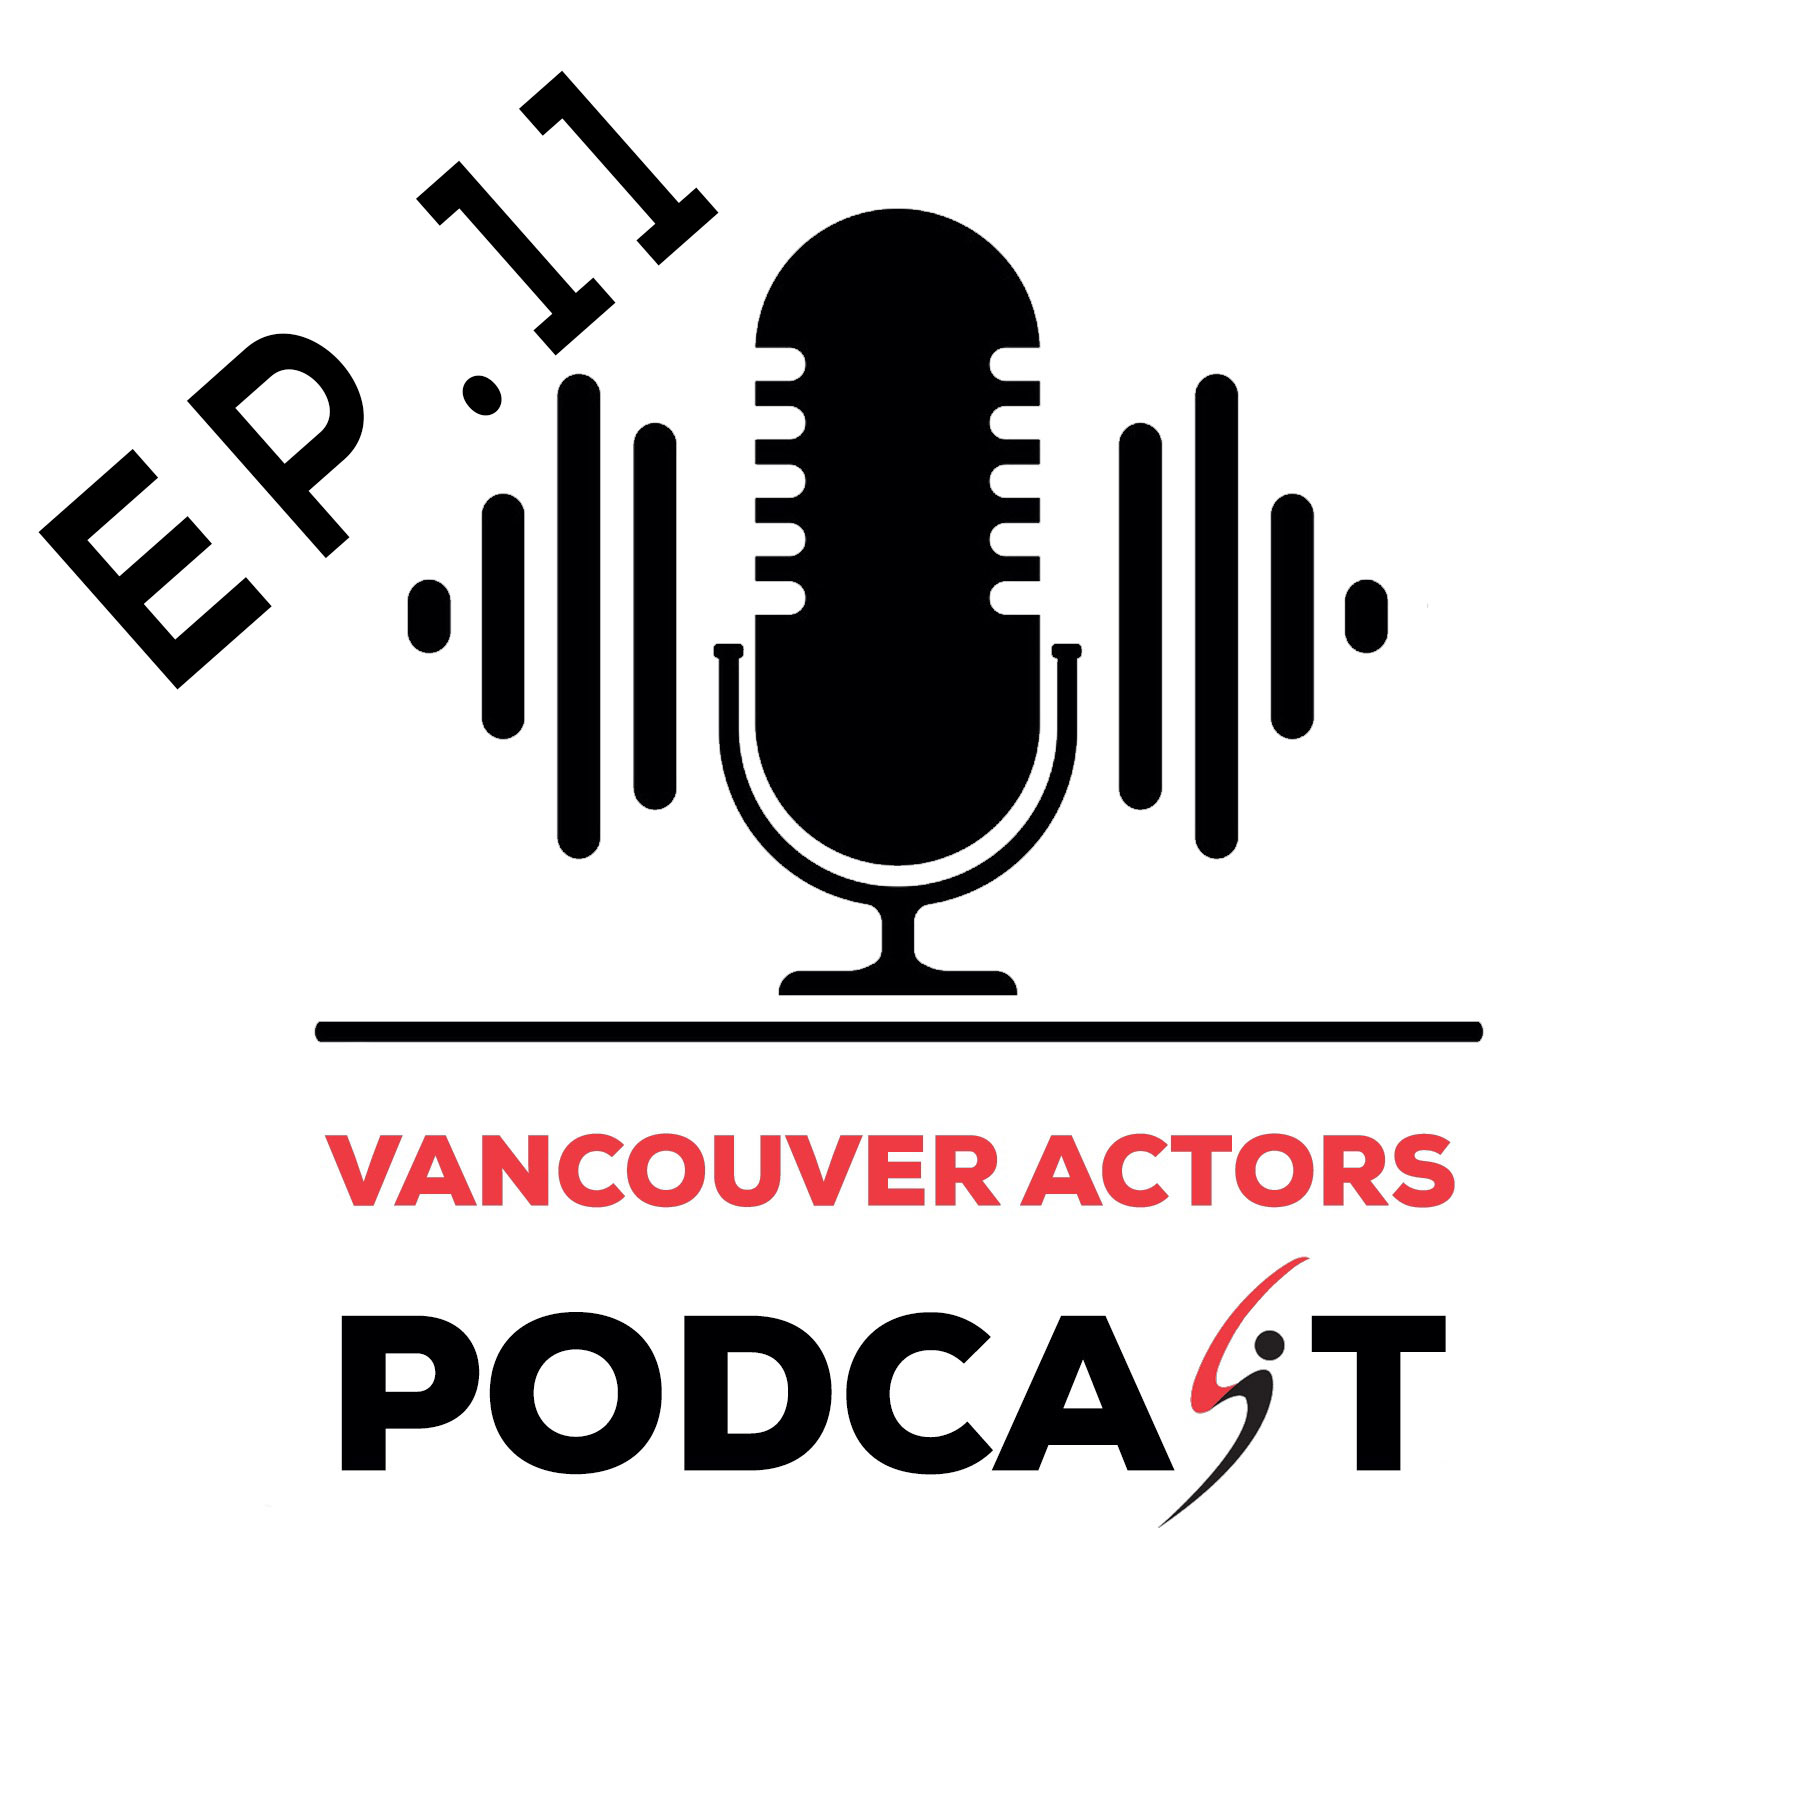 Vancouver Actors Podcast Michael Coleman Ep. 11